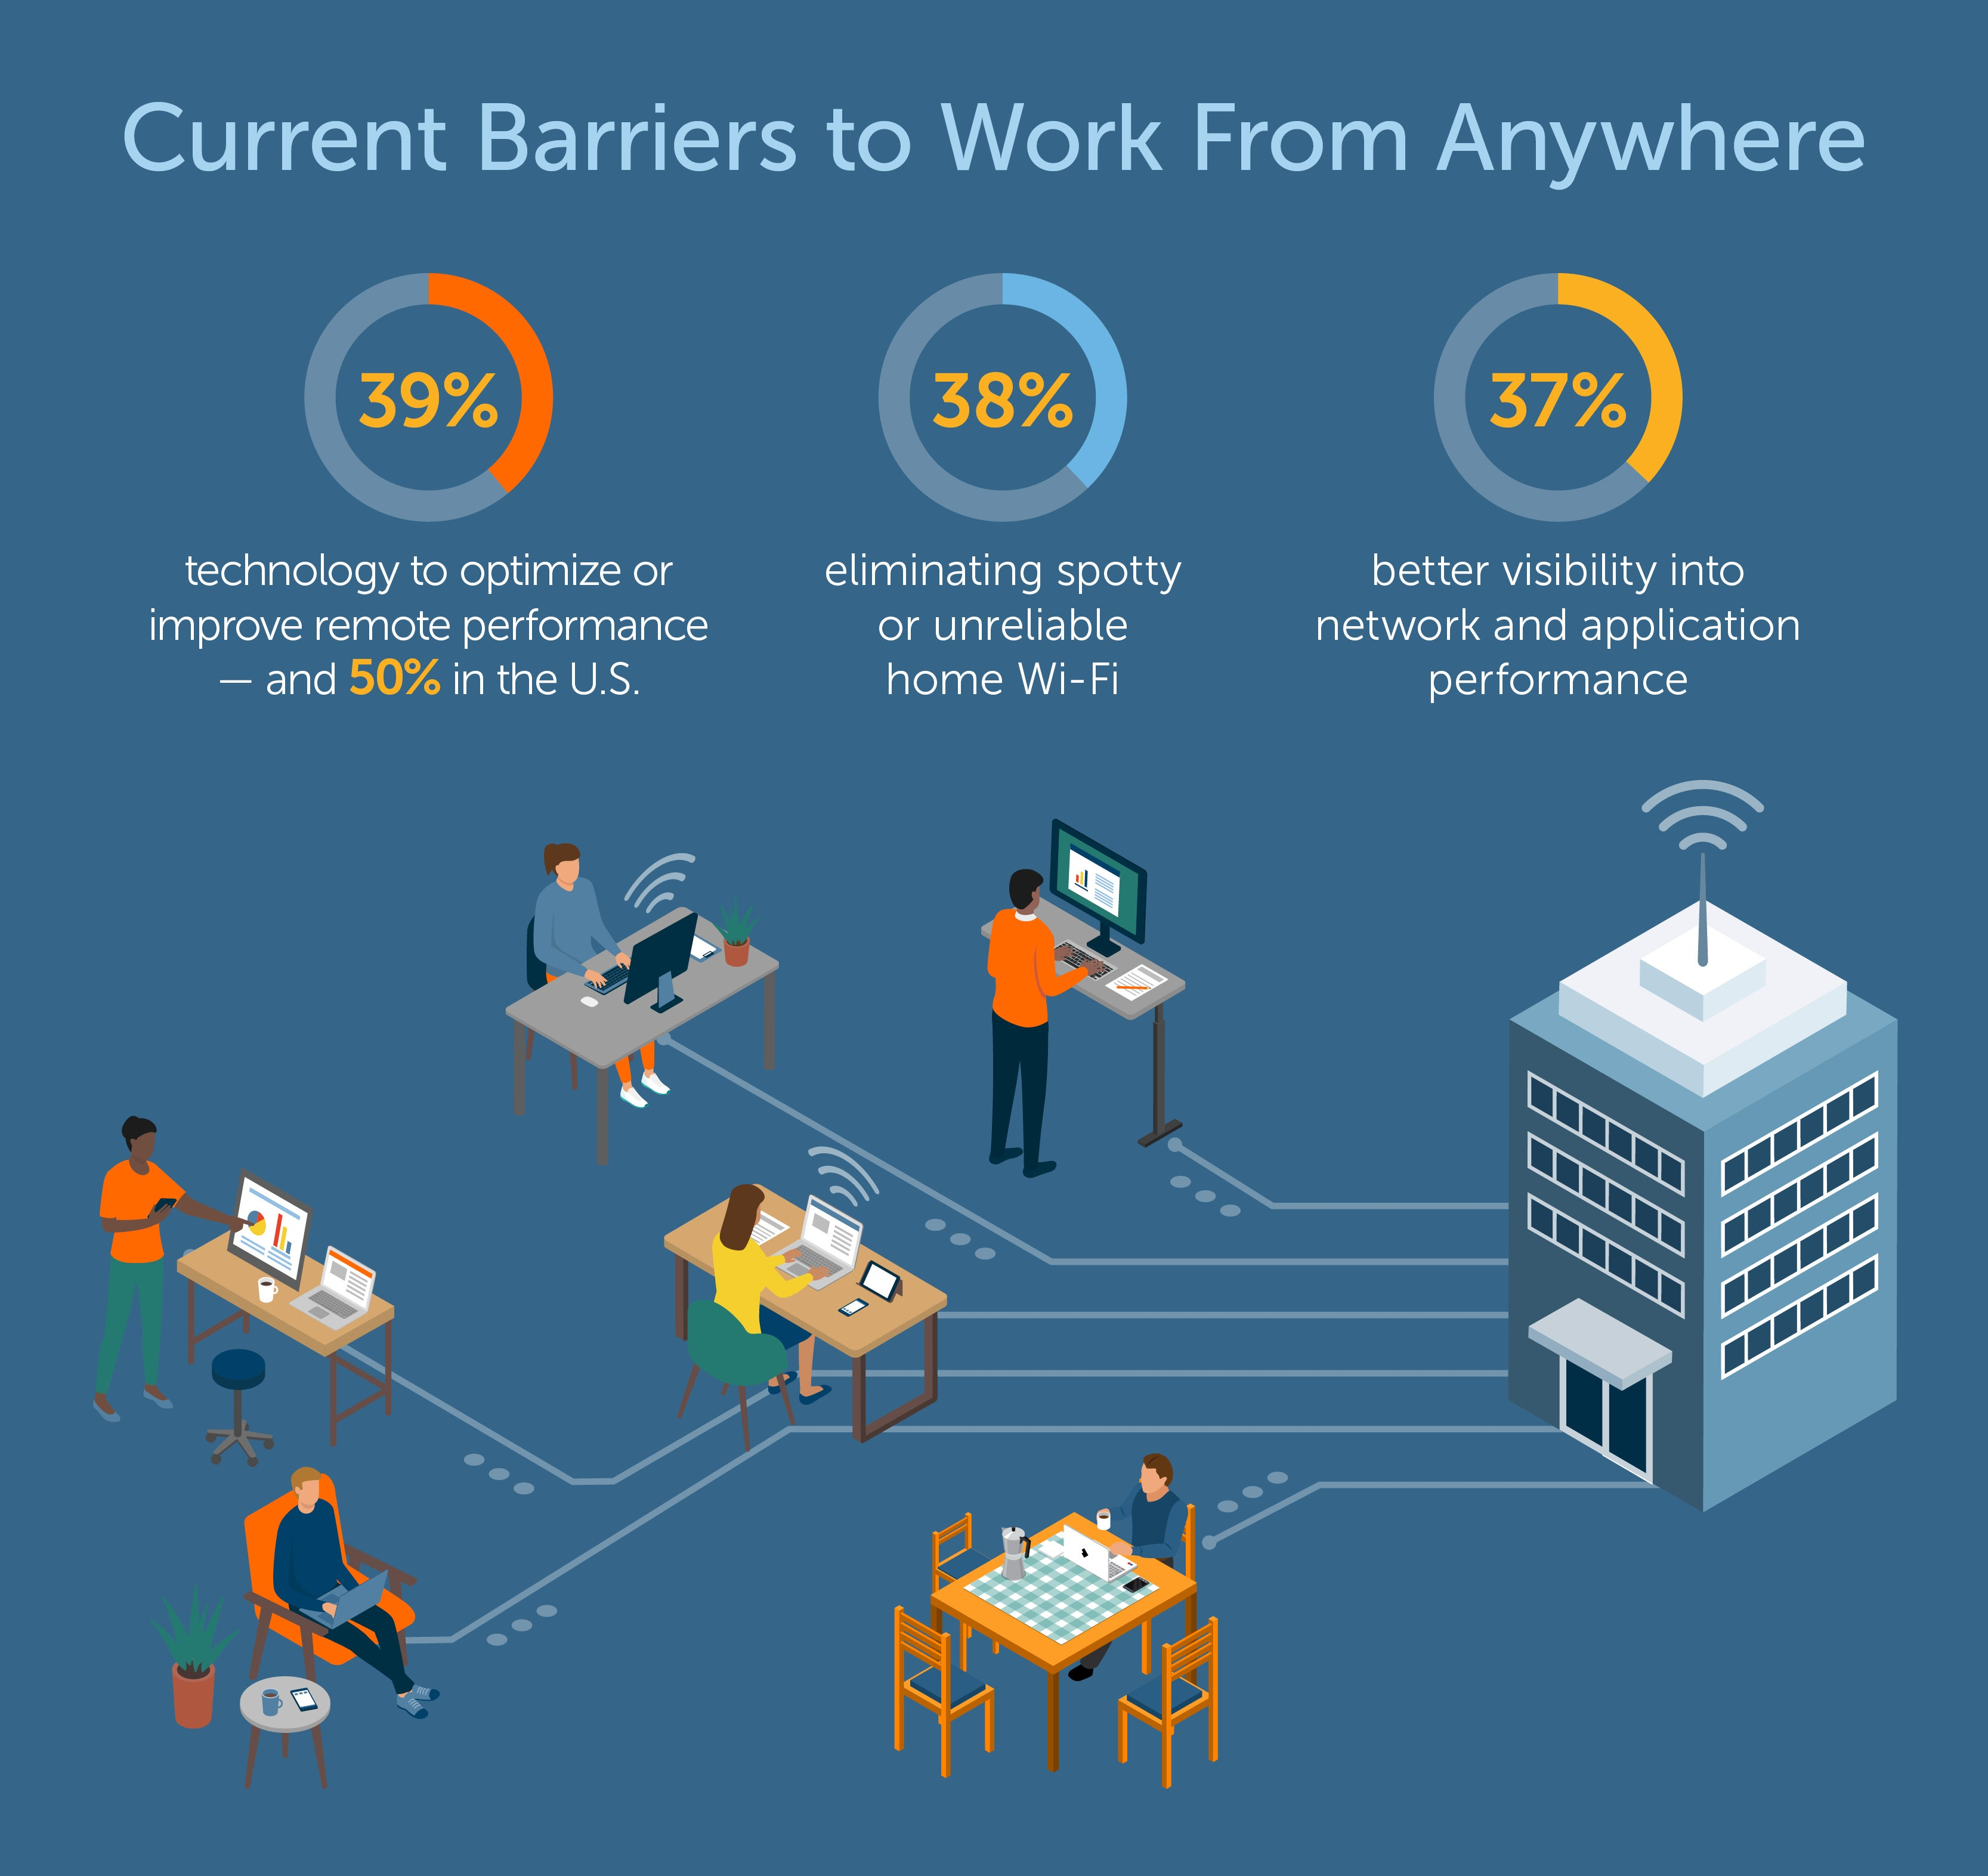 Riverbed Future of Work Global Survey 2020 reveals current barriers to remote workforce performance